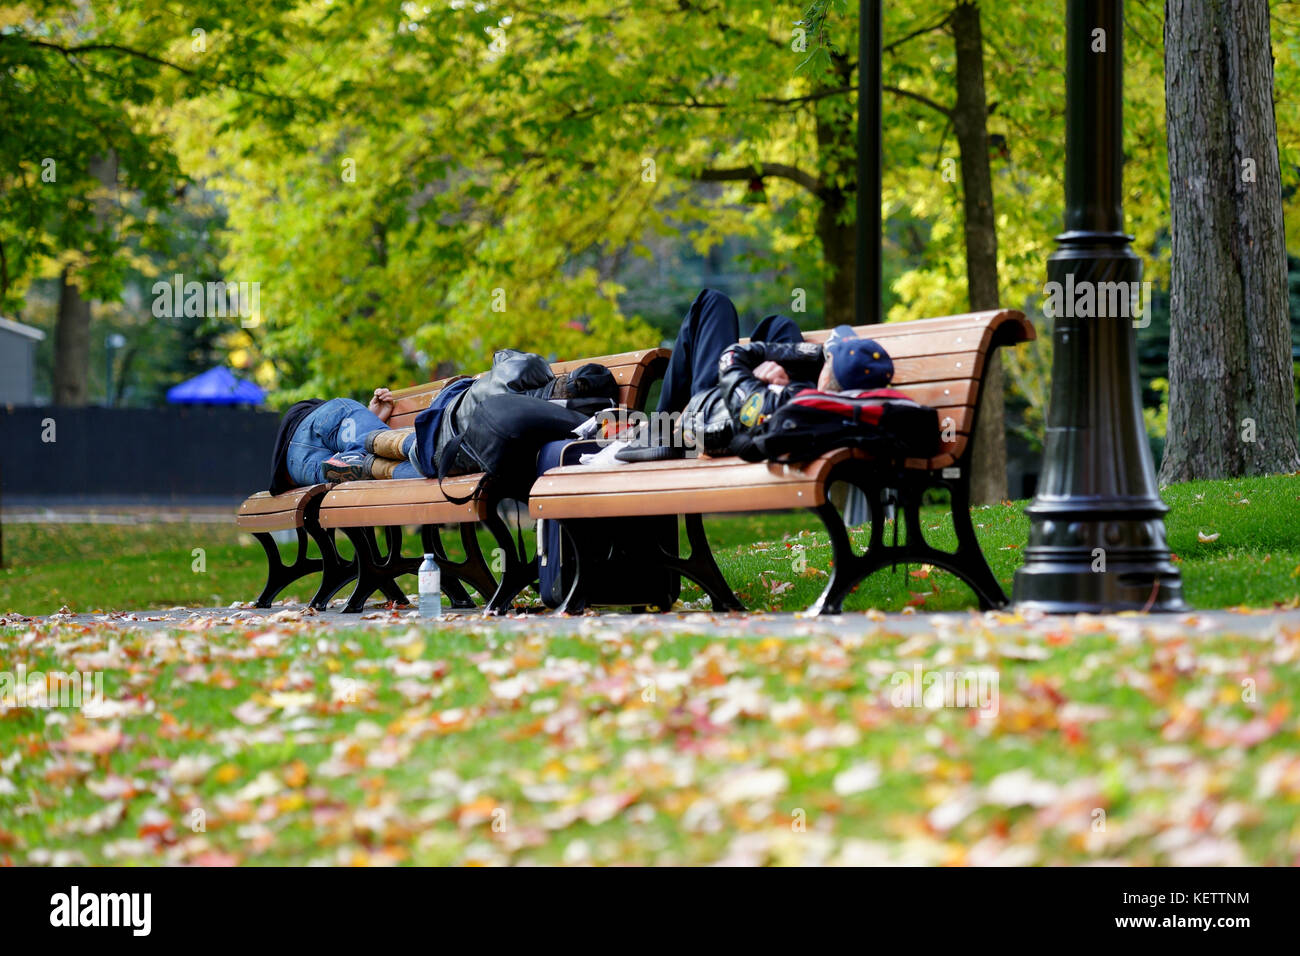 Montreal,Canada,22 October,2017.Homeless men sleeping on a park bench in Montreal's downtown core.Credit:Mario - Stock Image